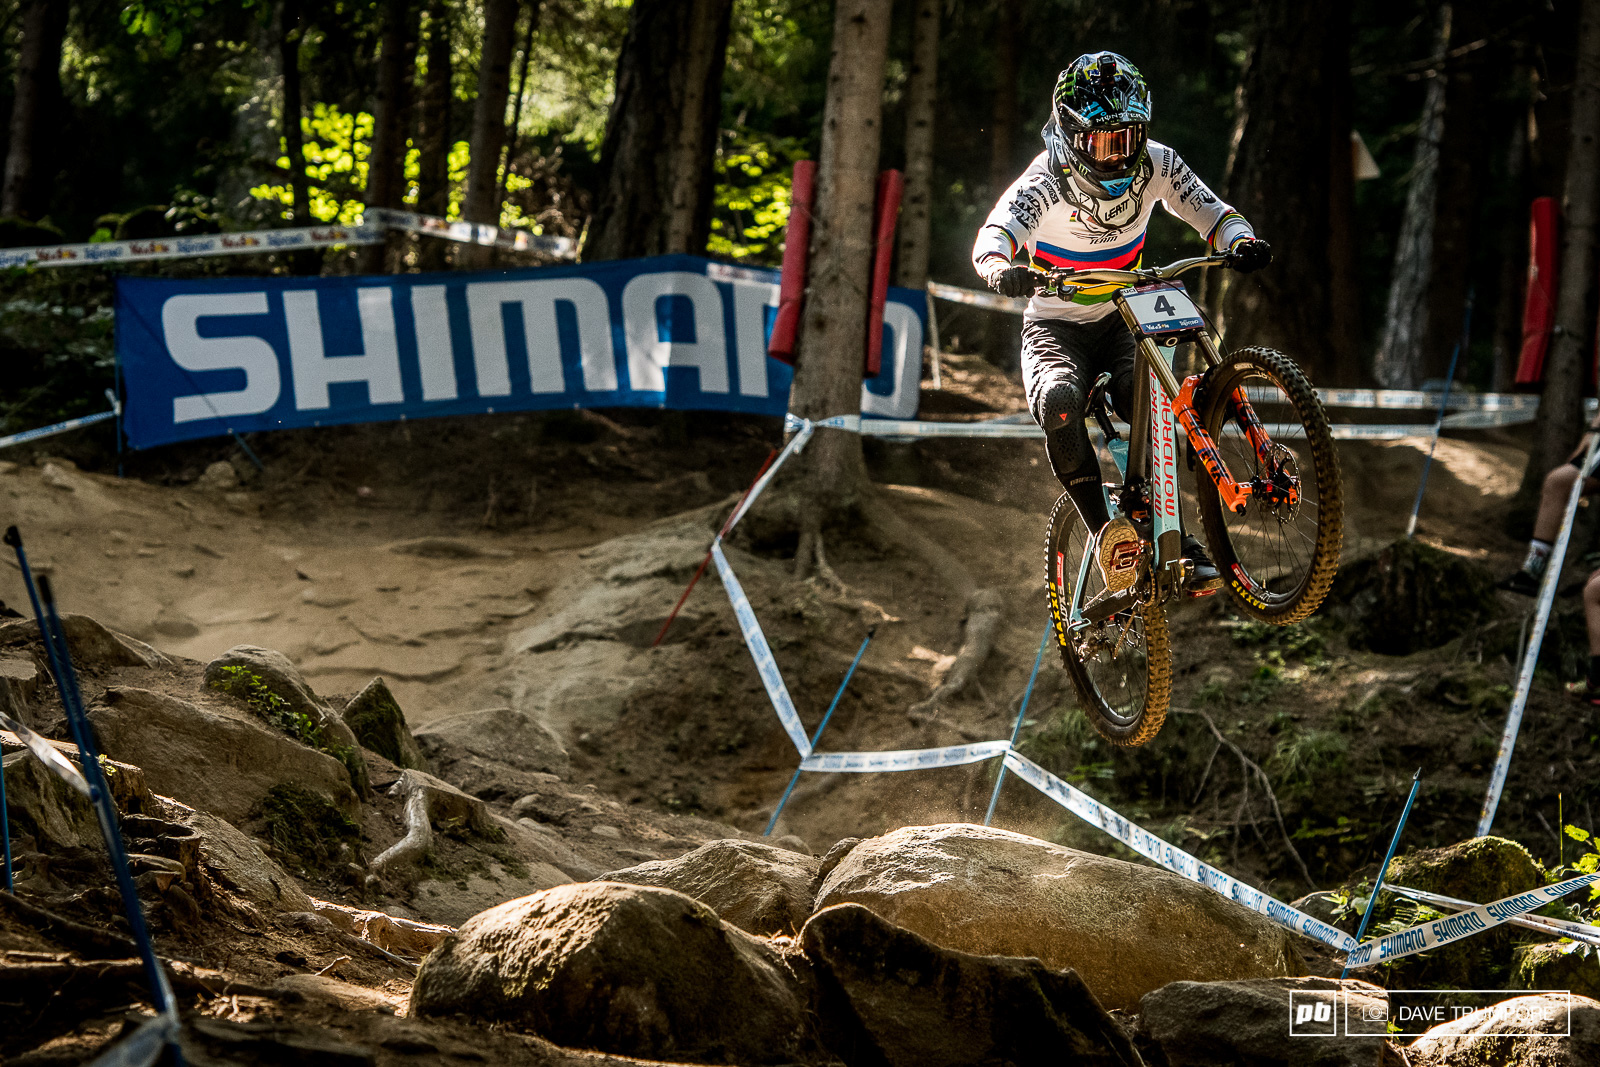 Danny Hart was going for it today but a crash in the woods put an ends to his hopes of victory.